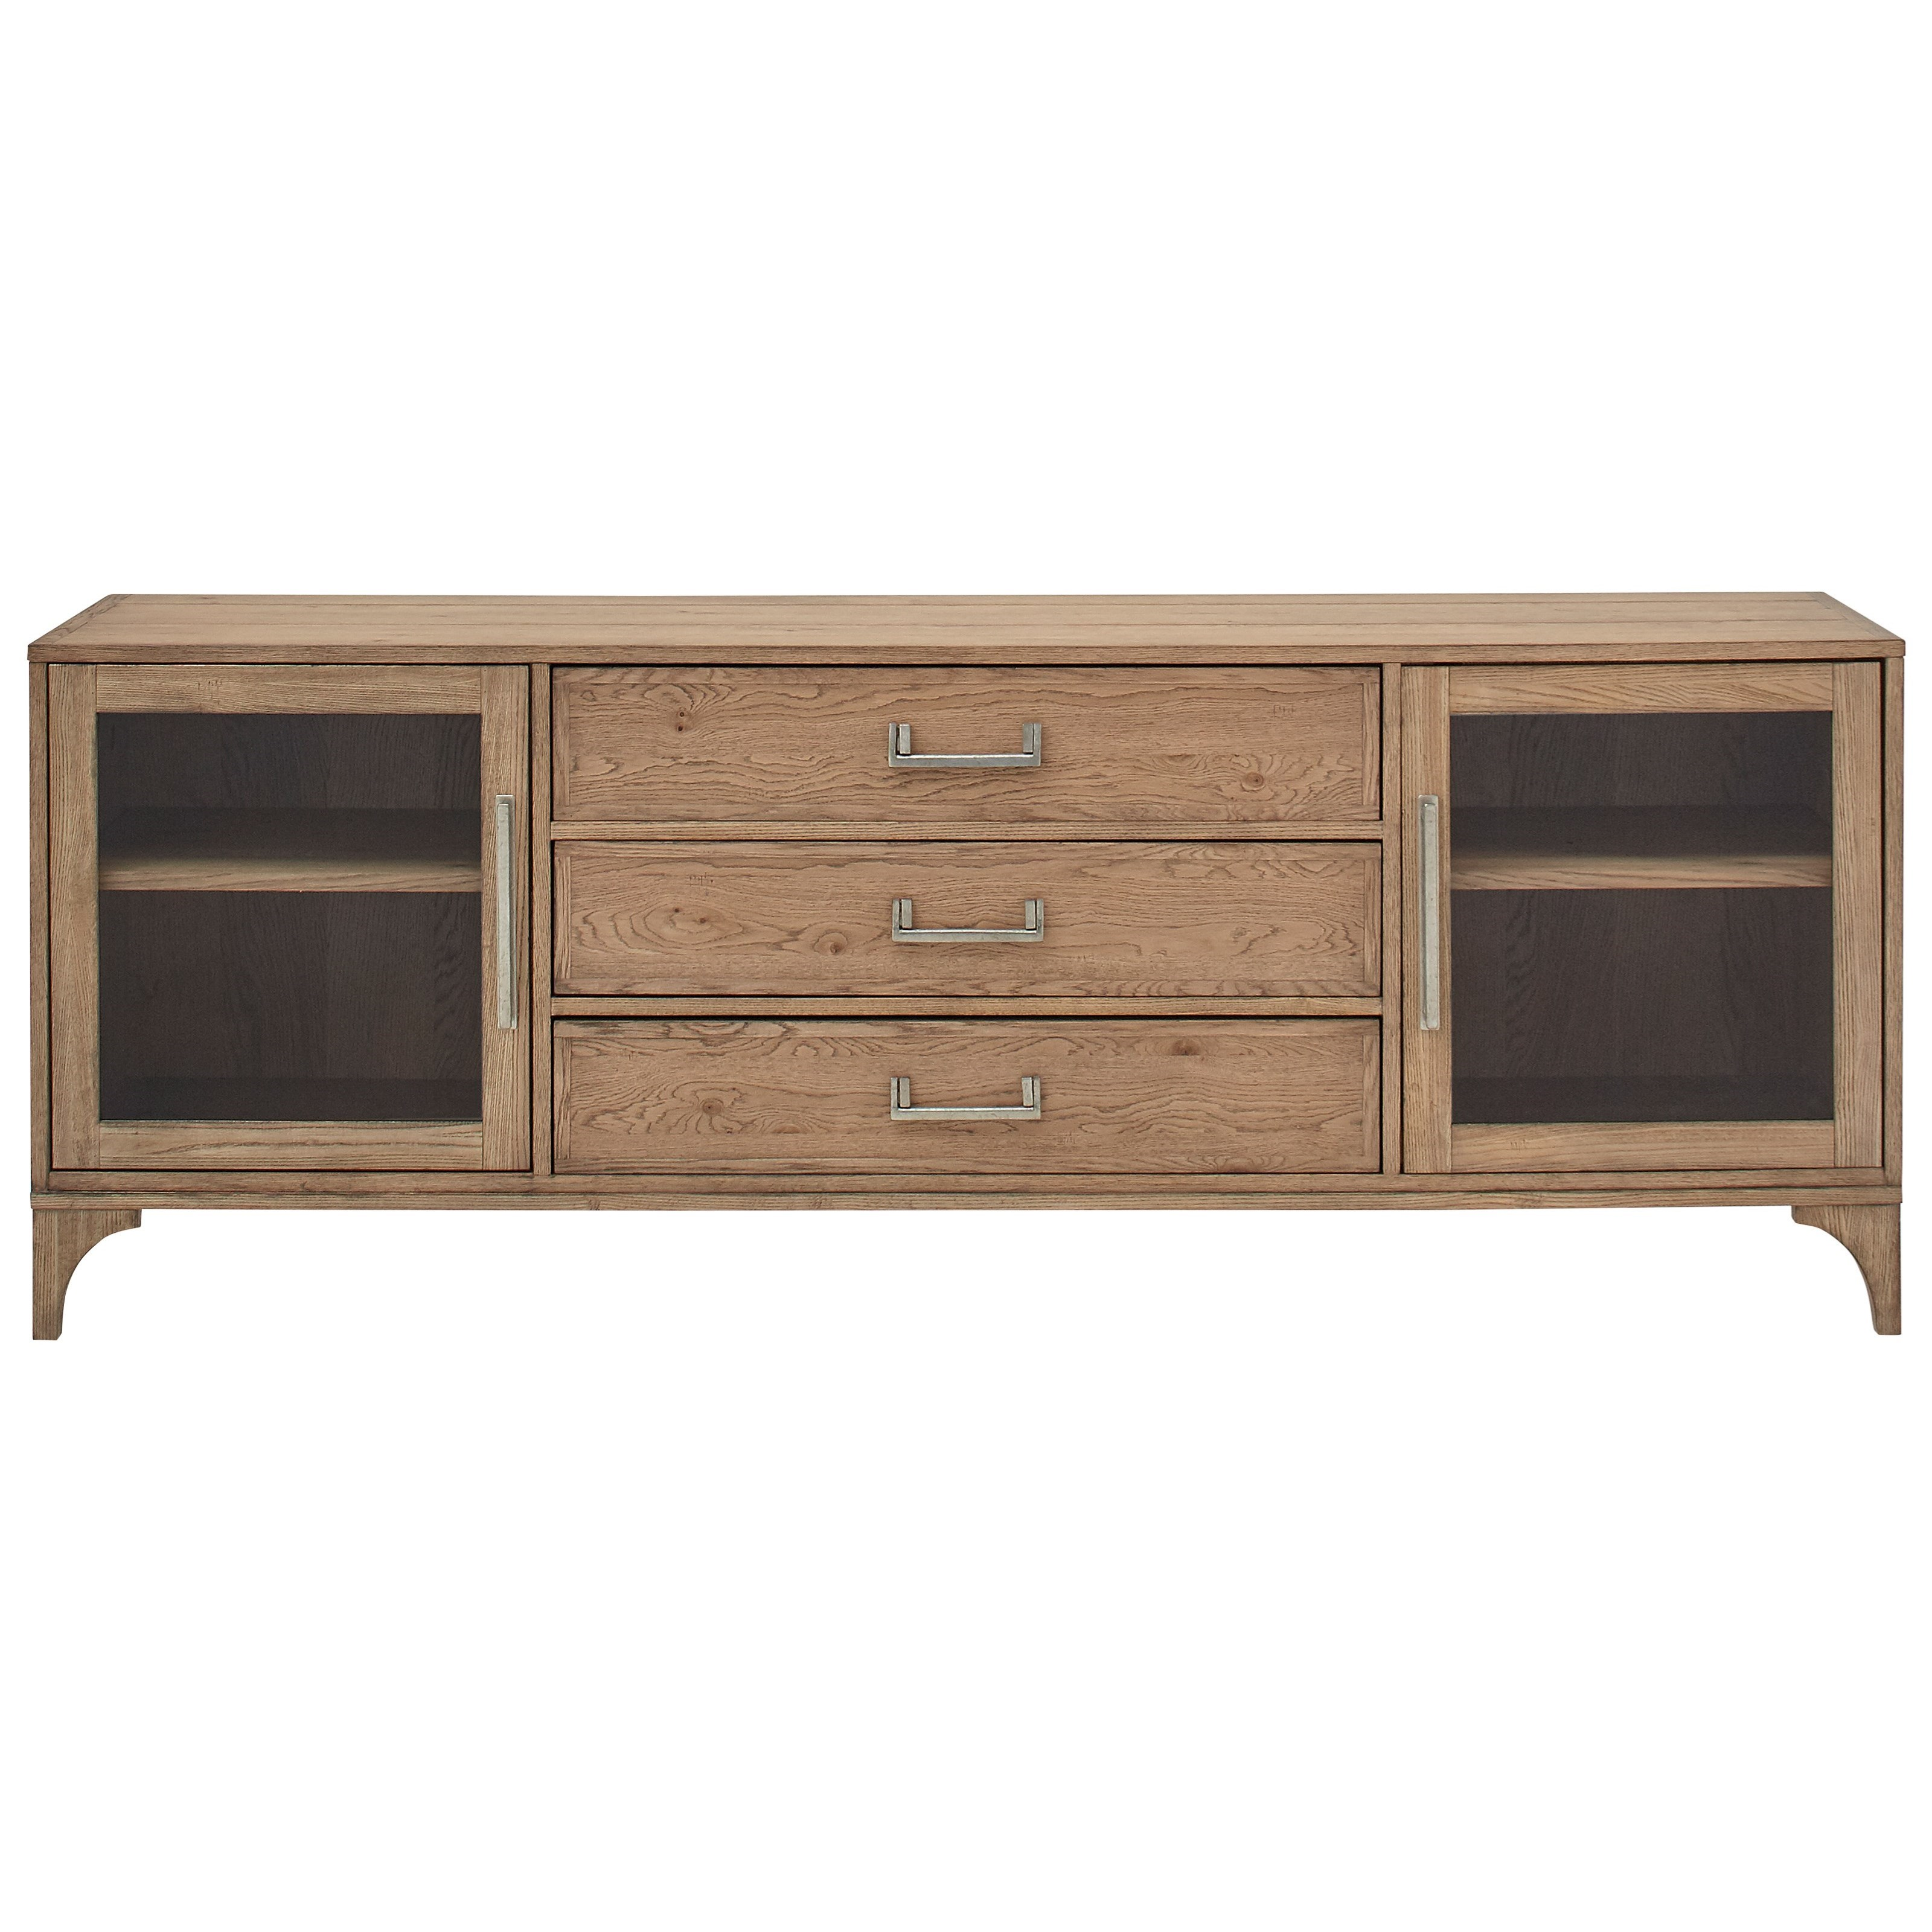 Passage Media Cabinet by A.R.T. Furniture Inc at C. S. Wo & Sons California